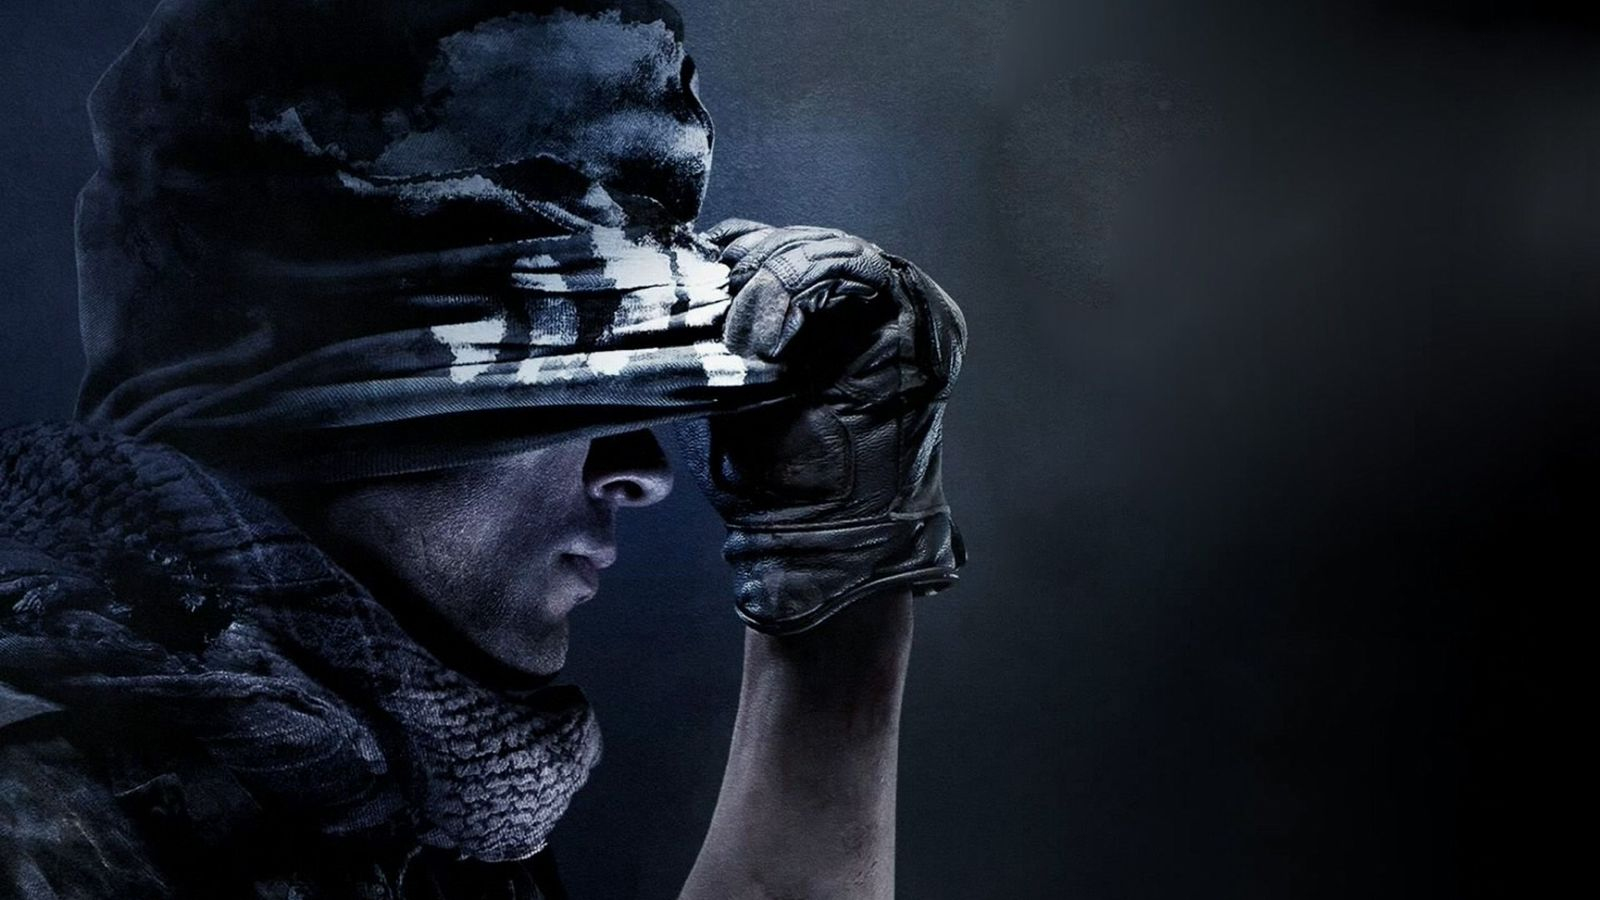 Call Of Duty new Wallpaper